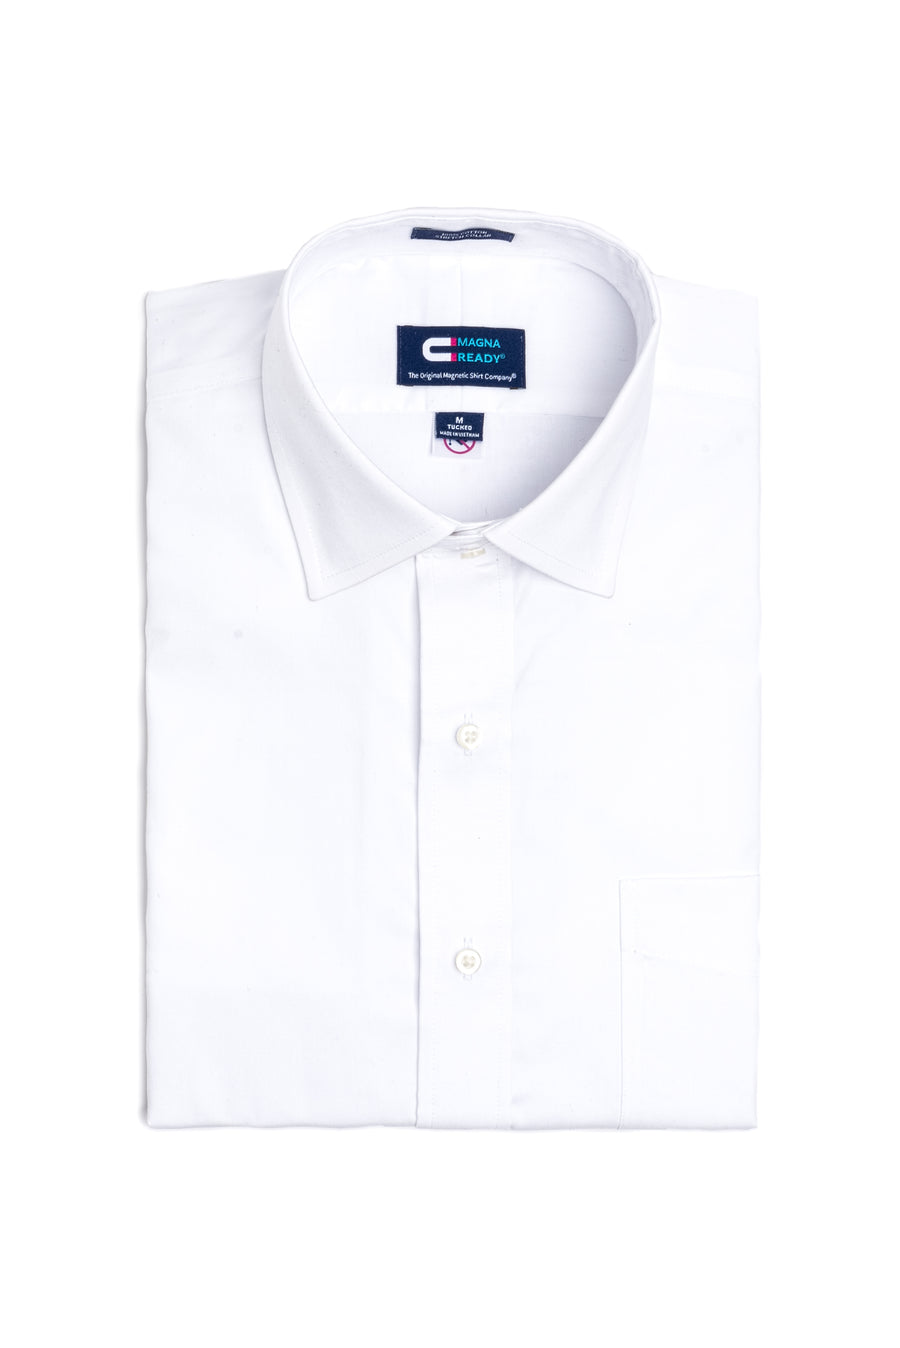 Classic White Short Sleeve Oxford Shirt with Magnetic Closures